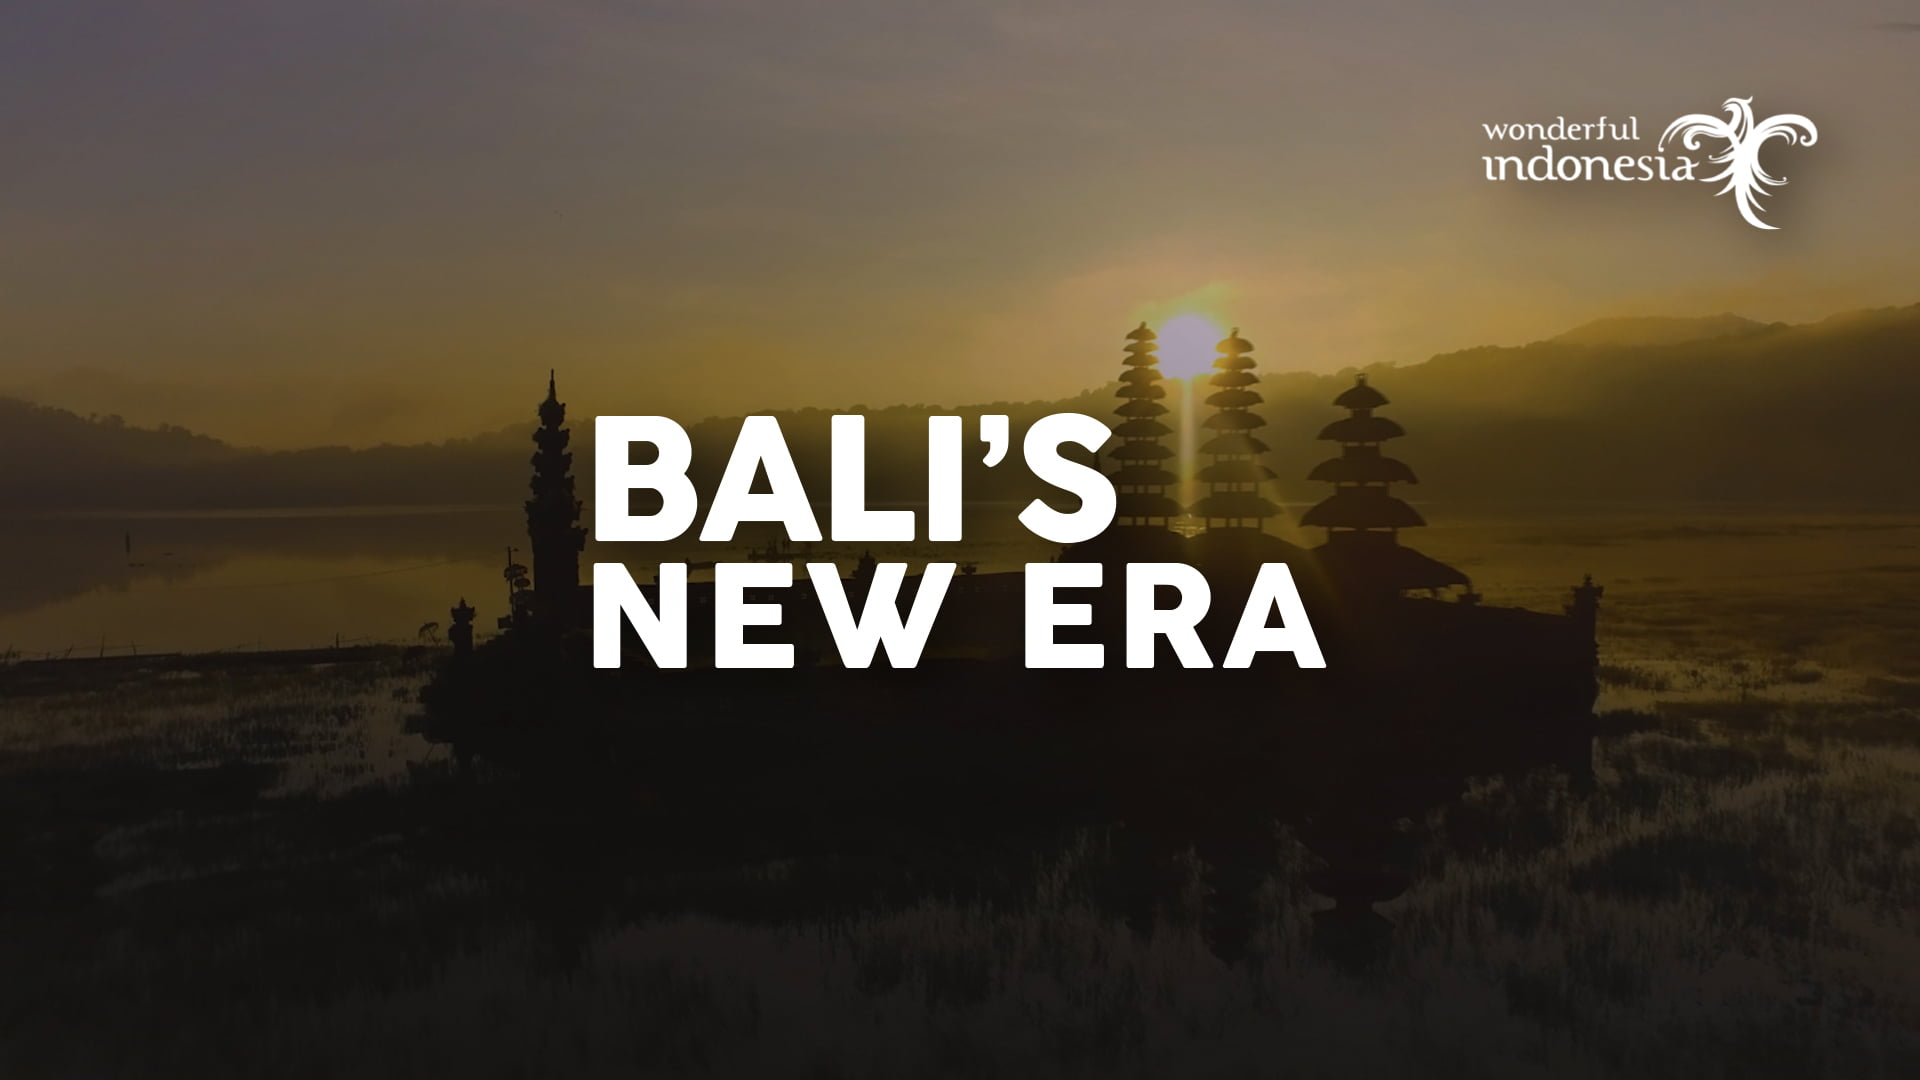 Welcome to Bali's New Era